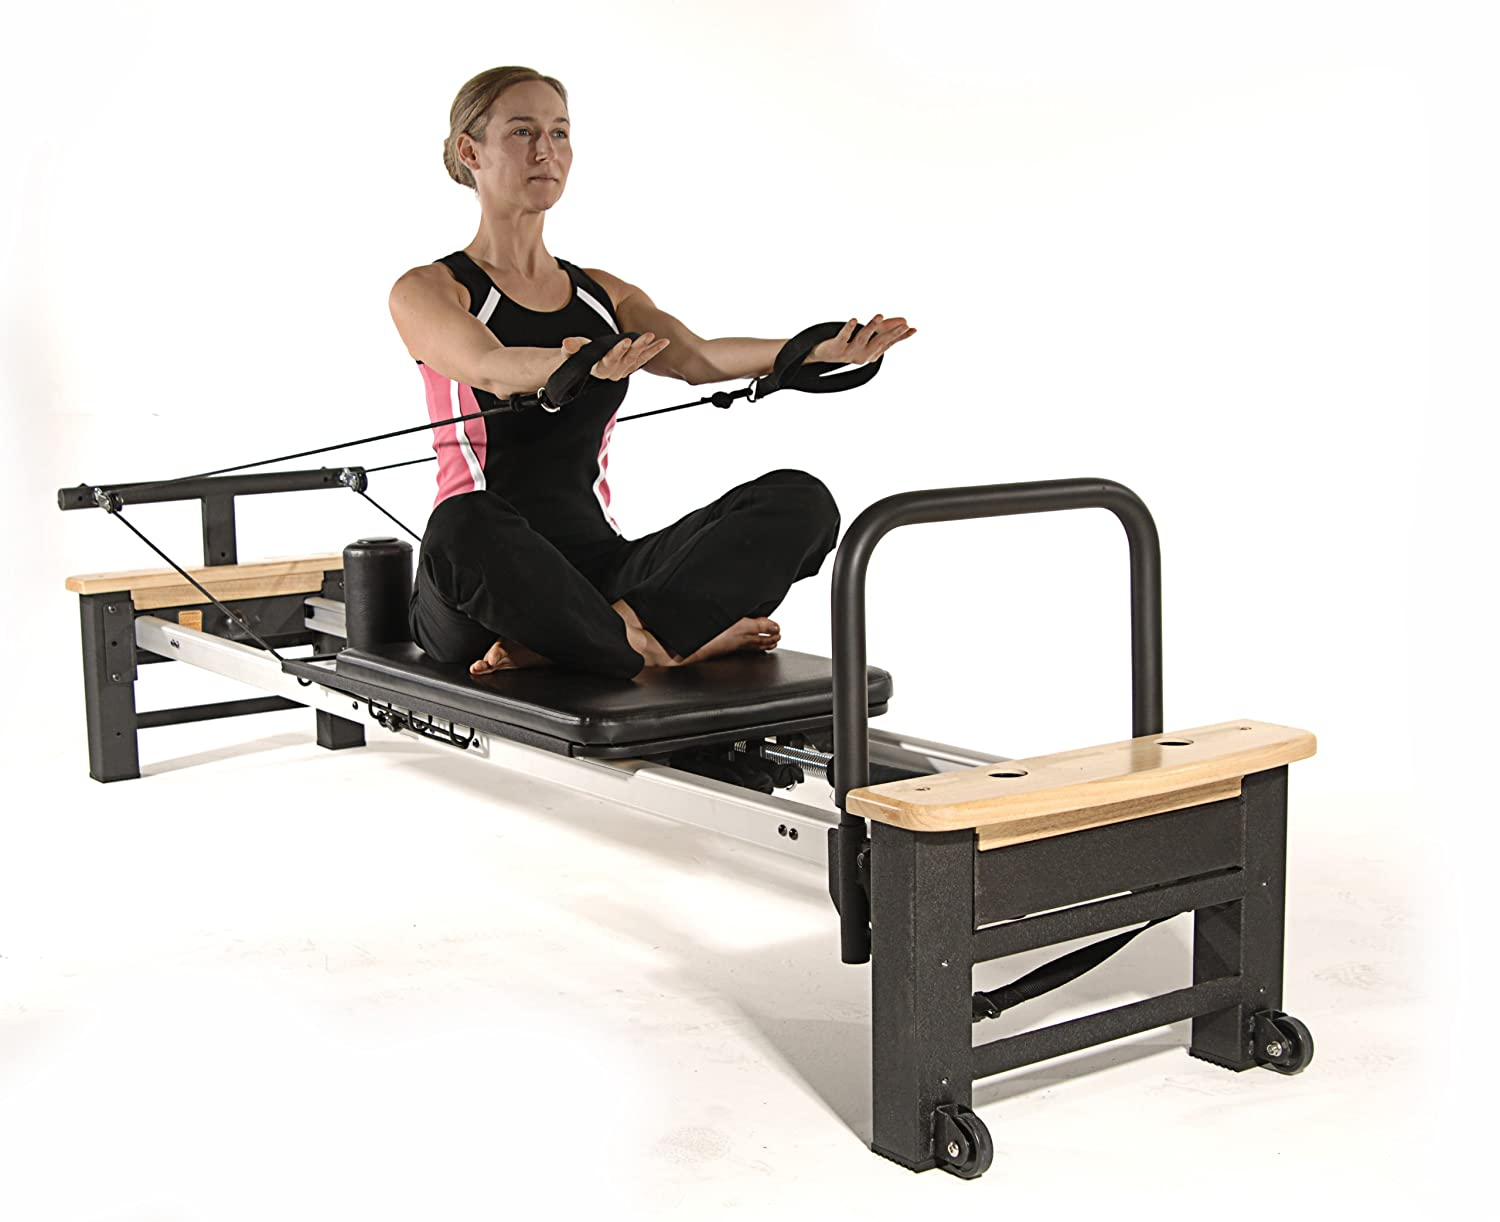 Pilates Workout Bench 28 Images Pilates Workout Bench Pilates Workout Machine Bench Workout